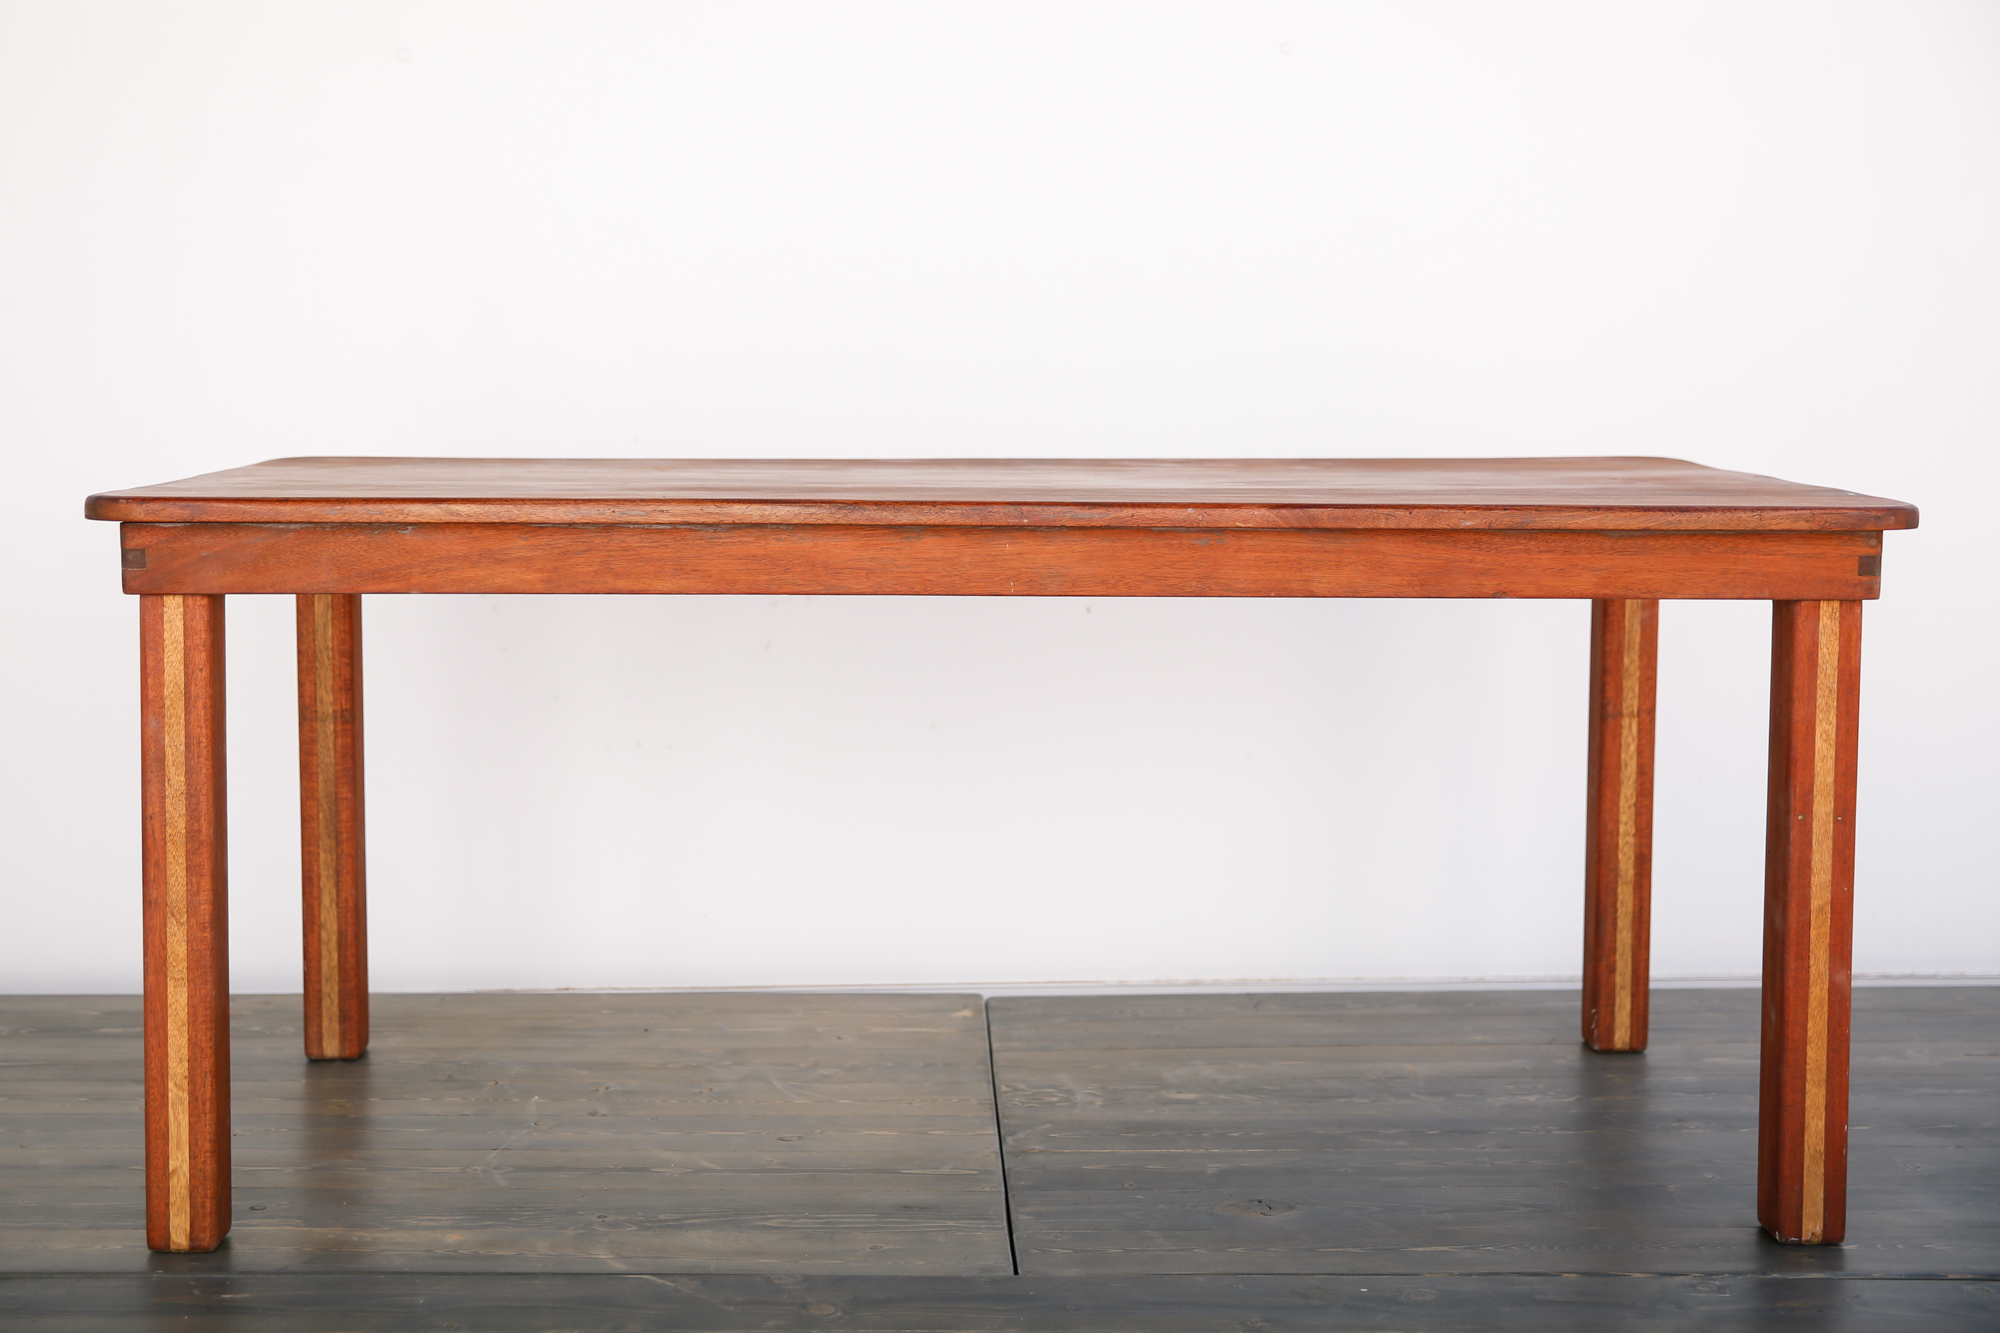 6 X3 Rose Wood Table With Wood Legs Out Of The Dust Rentals